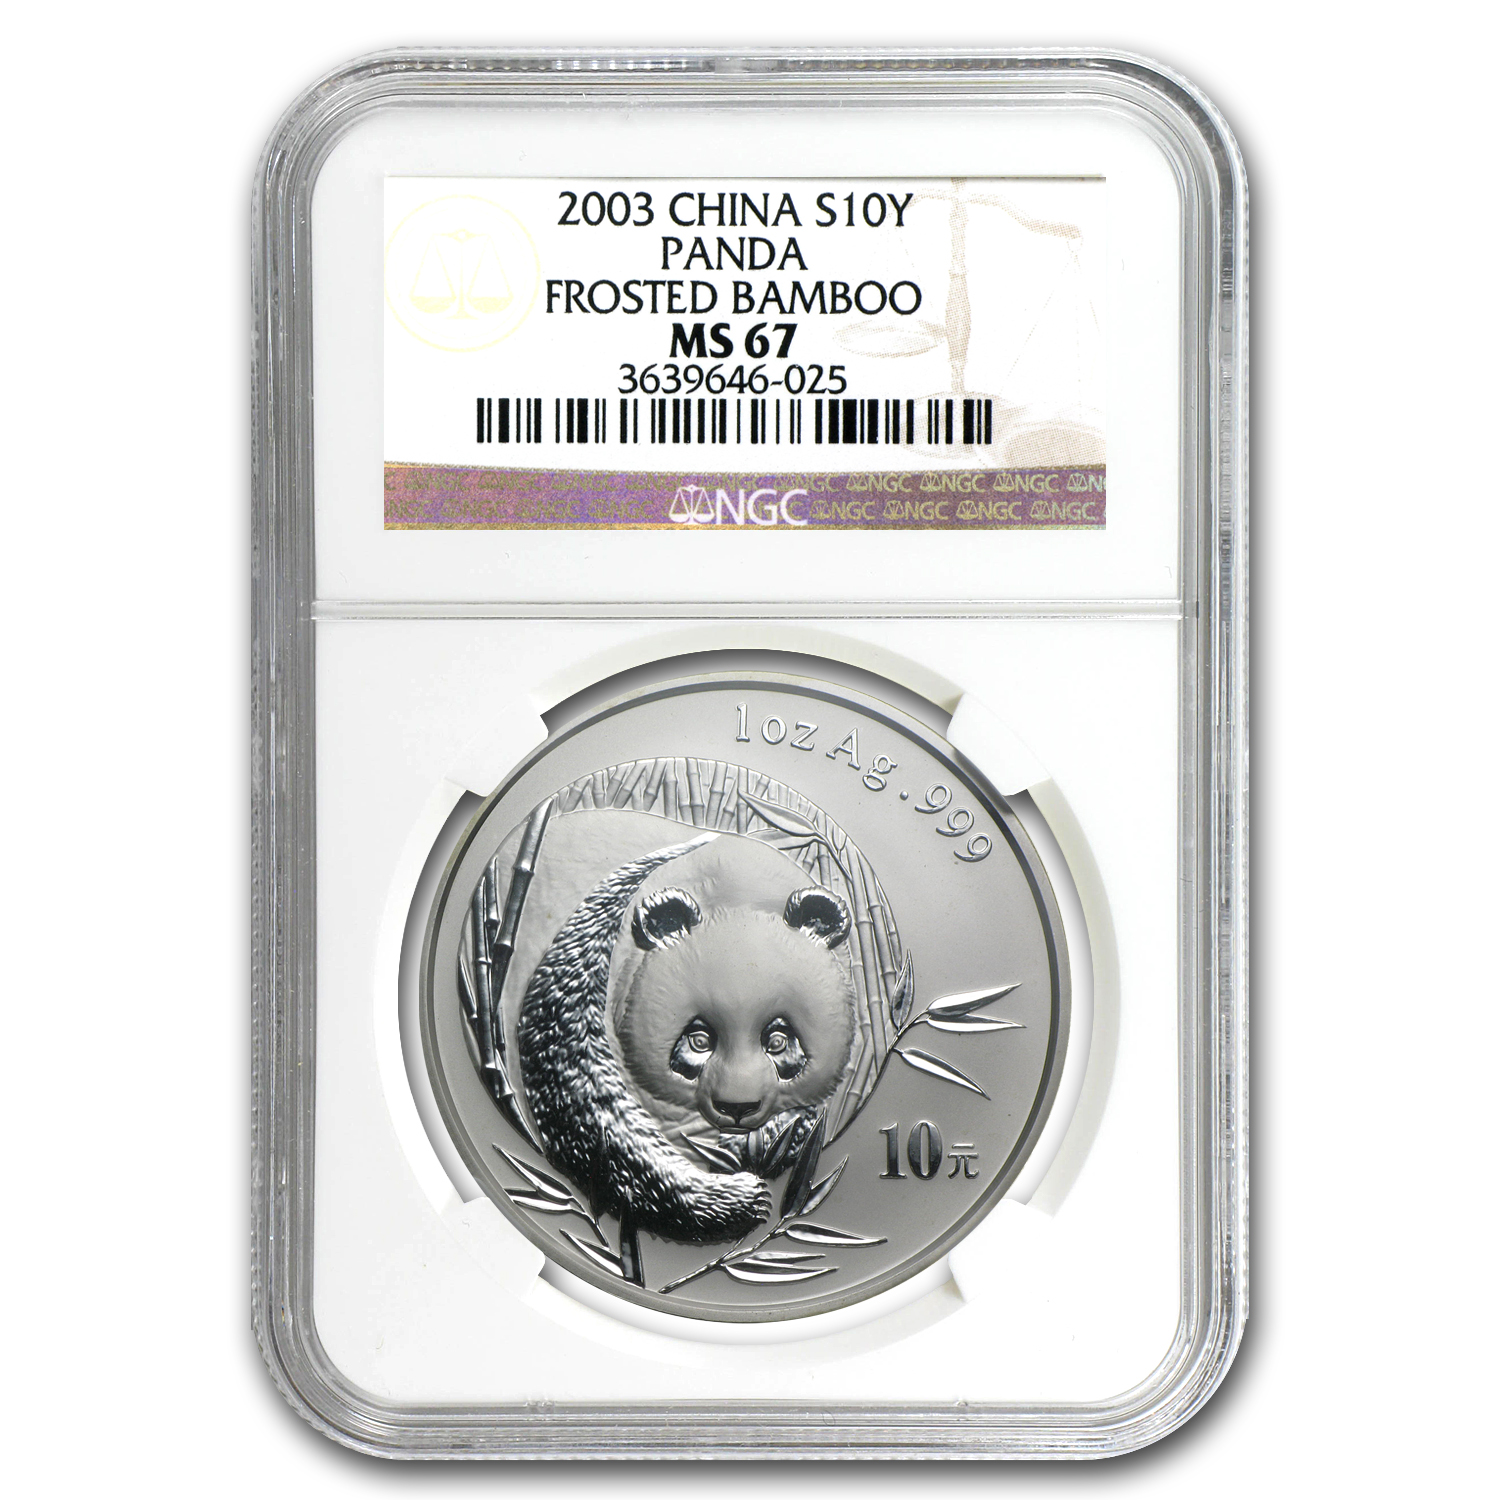 2003 China 1 oz Silver Panda MS-67 NGC (Frosted Bamboo)